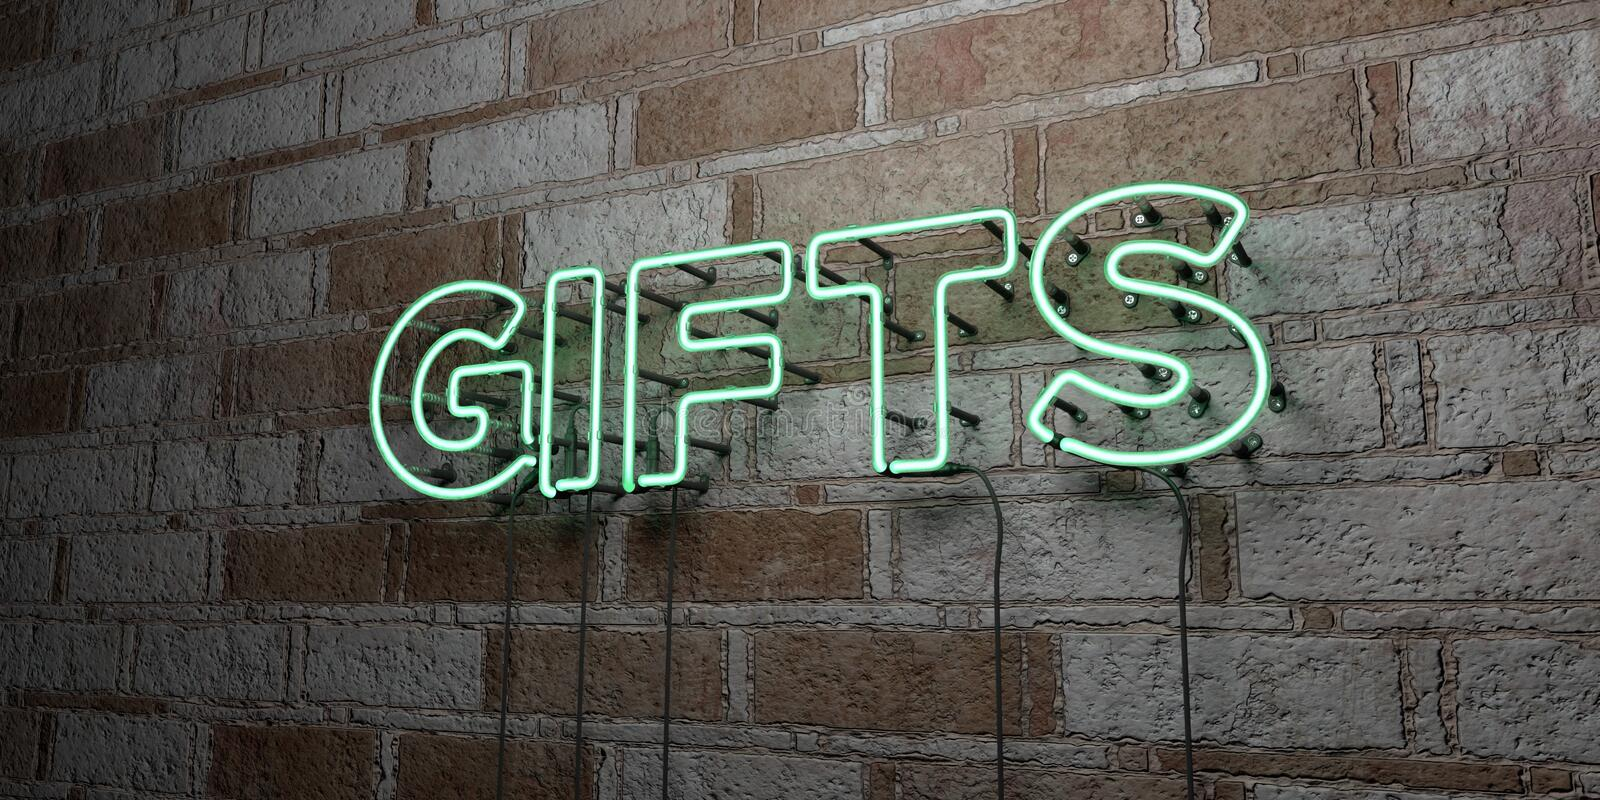 GIFTS - Glowing Neon Sign on stonework wall - 3D rendered royalty free stock illustration vector illustration